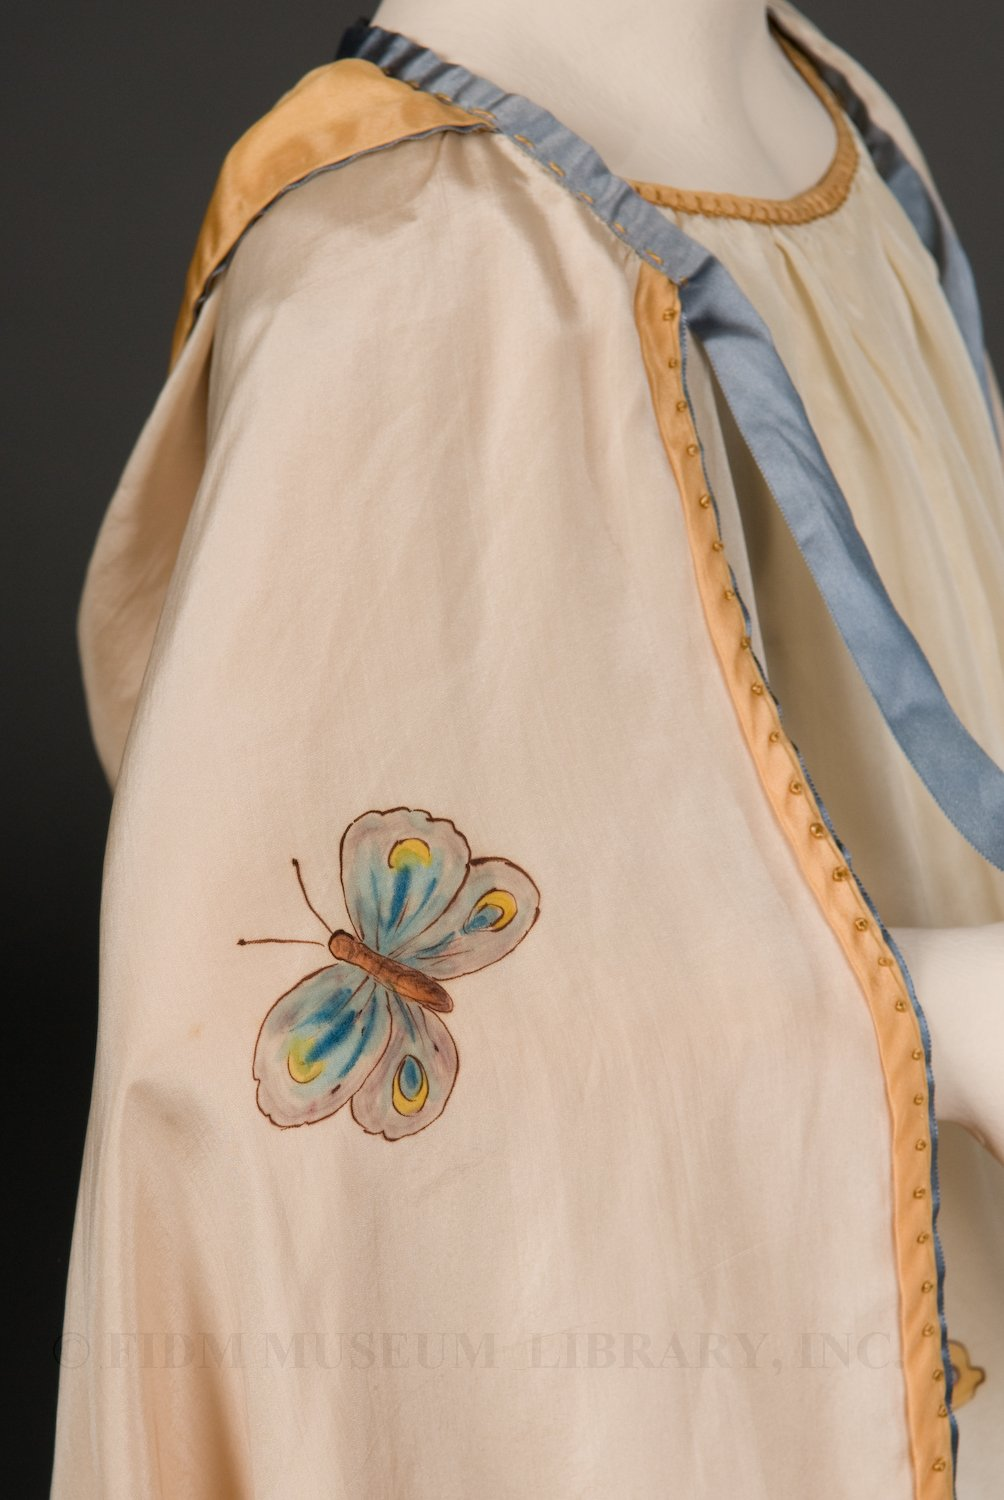 Child's 'Dainty Blossom' Ensemble, Daisy Stanford, Hand-painted silk, c. 1925, FIDM, 2003.5.24A-C